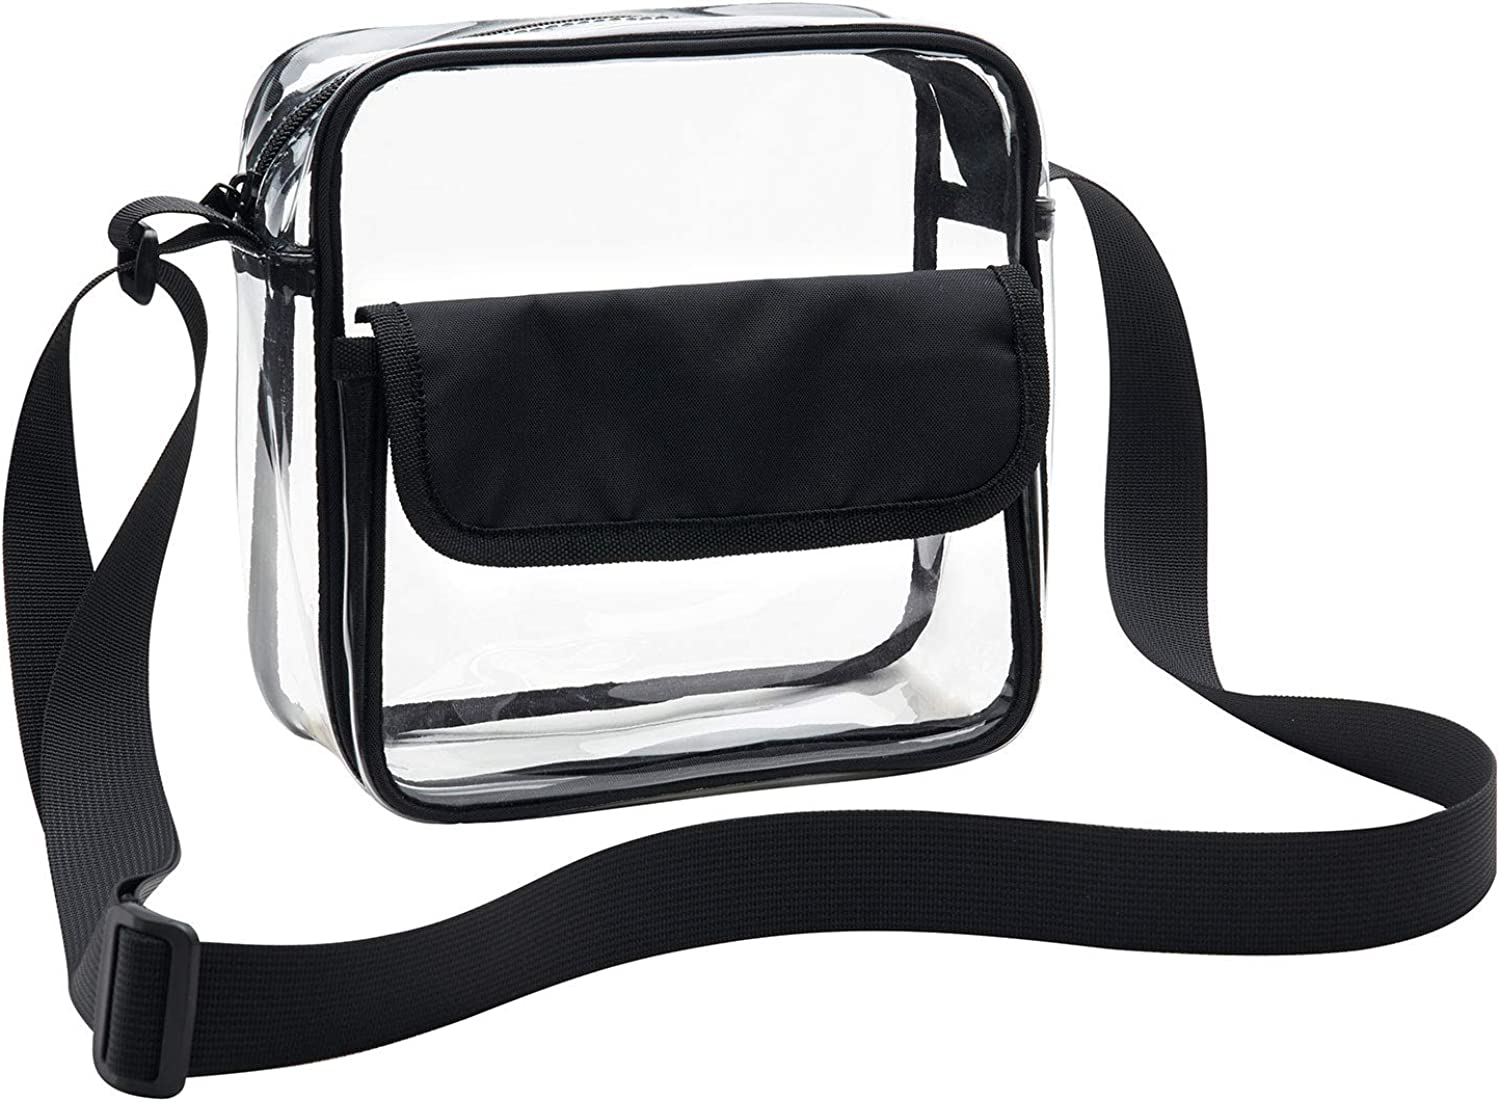 Vorspack Clear Crossbody Bag Stadium Approved Clear Bag Messenger Shoulder Bag with Adjustable Strap for Sports Event Concert Festival Work